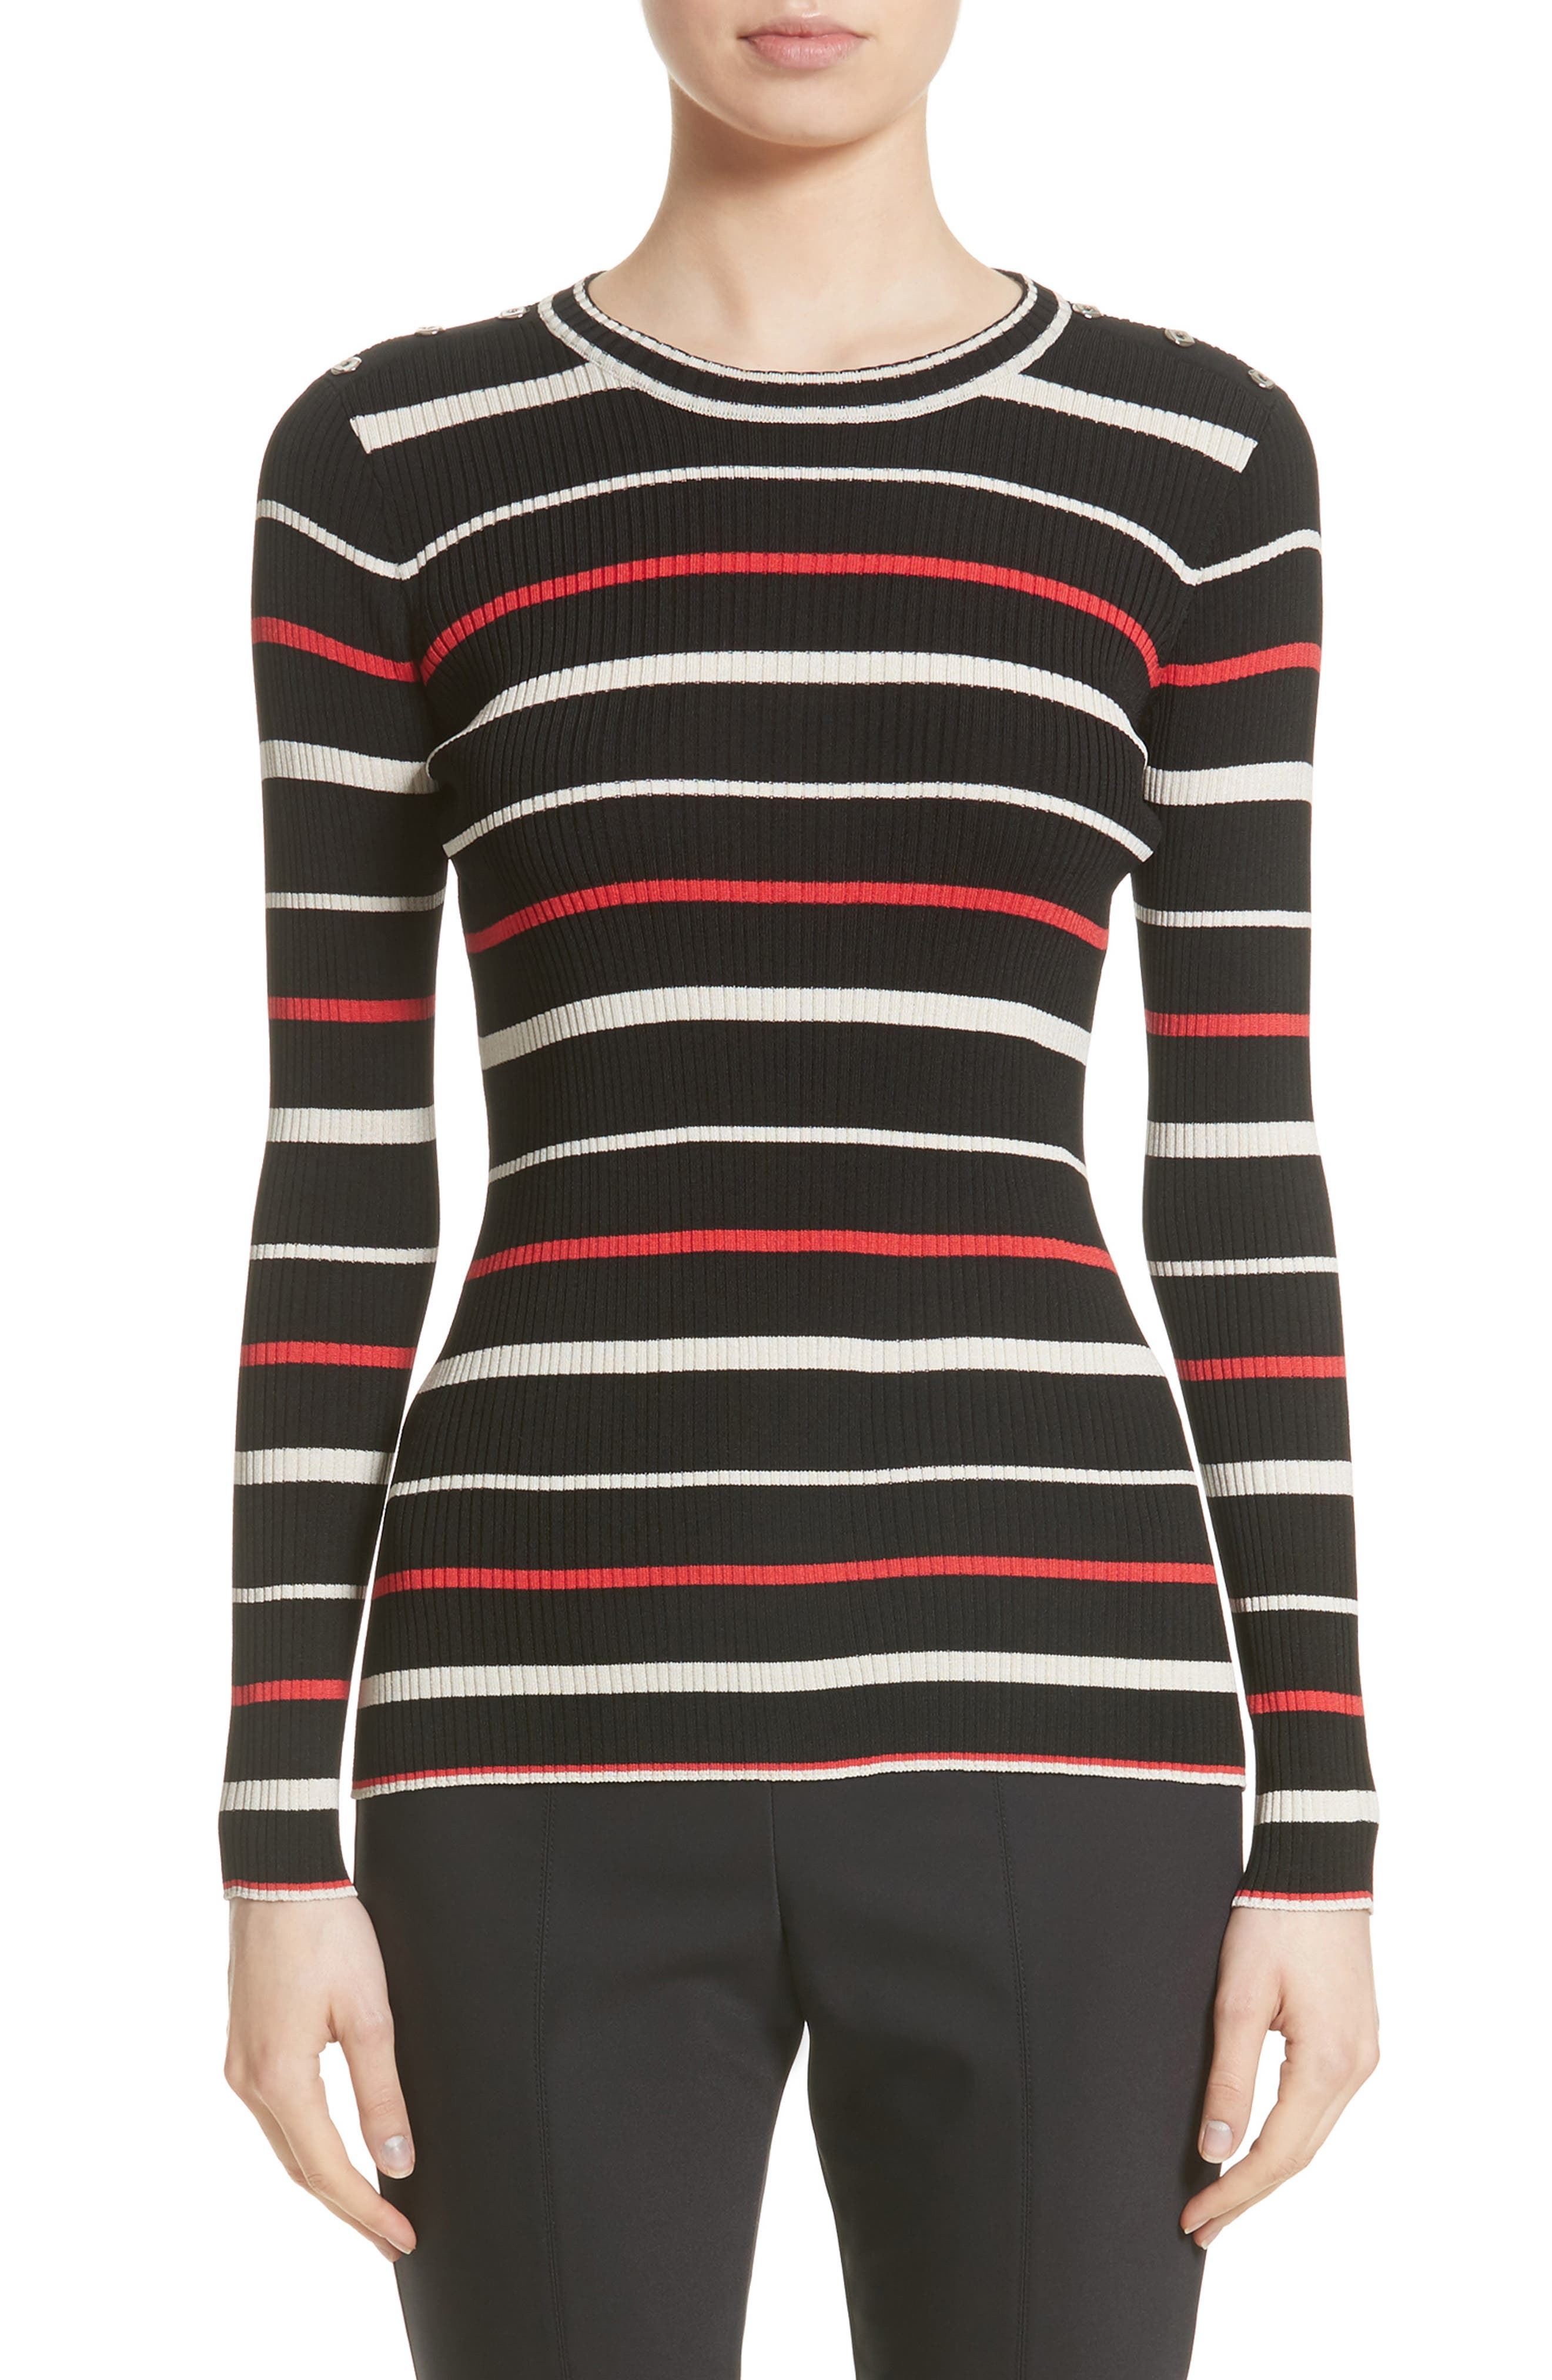 ST. JOHN COLLECTION Multicolor Stripe Knit Top